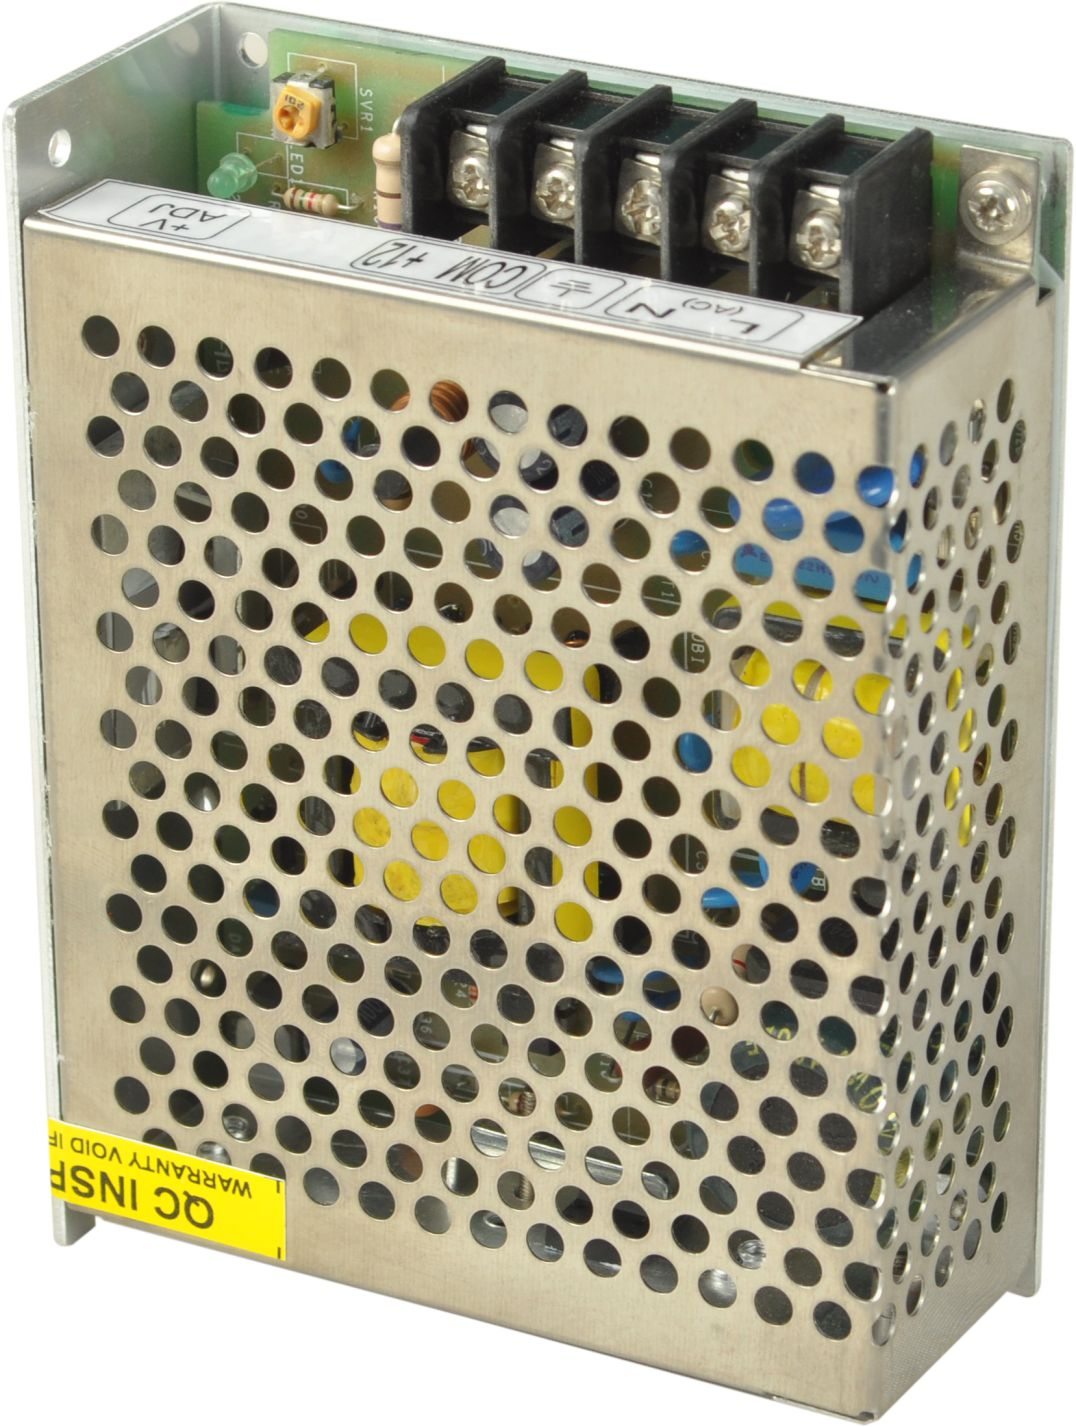 LUBI 24V 4 5A 100W Switch Mode Power Supply (SMPS)